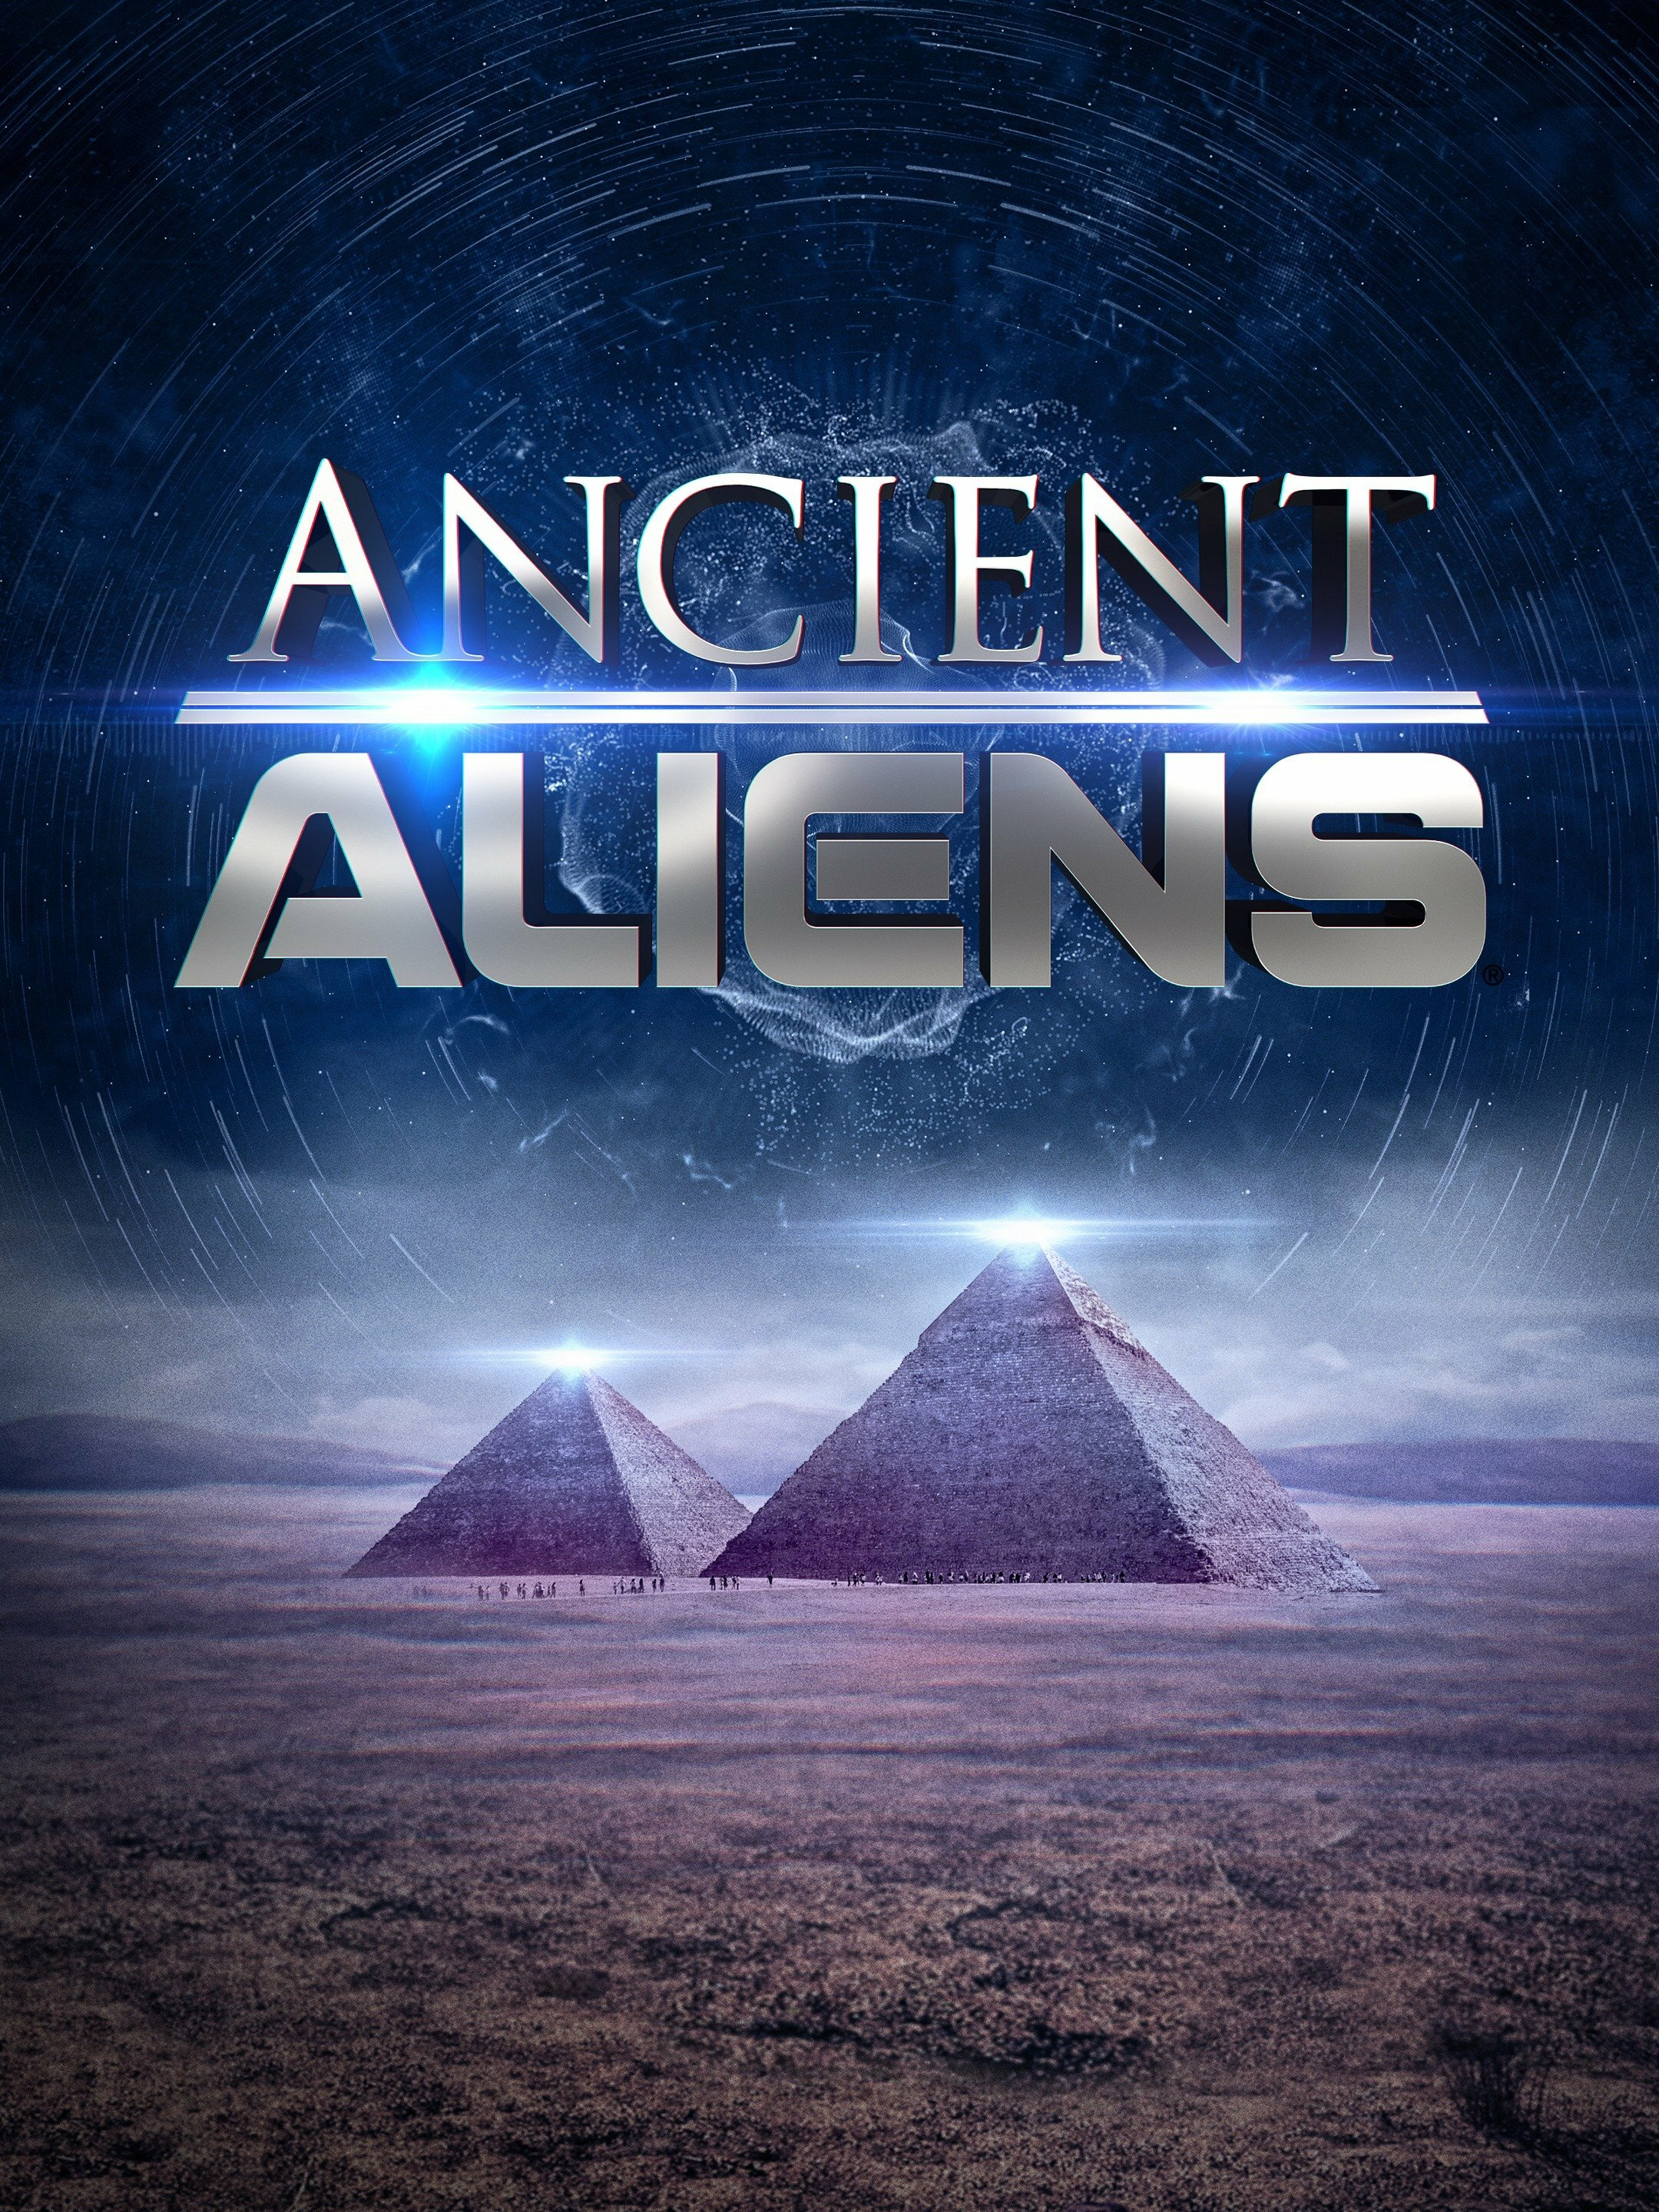 Ancient Aliens ne zaman